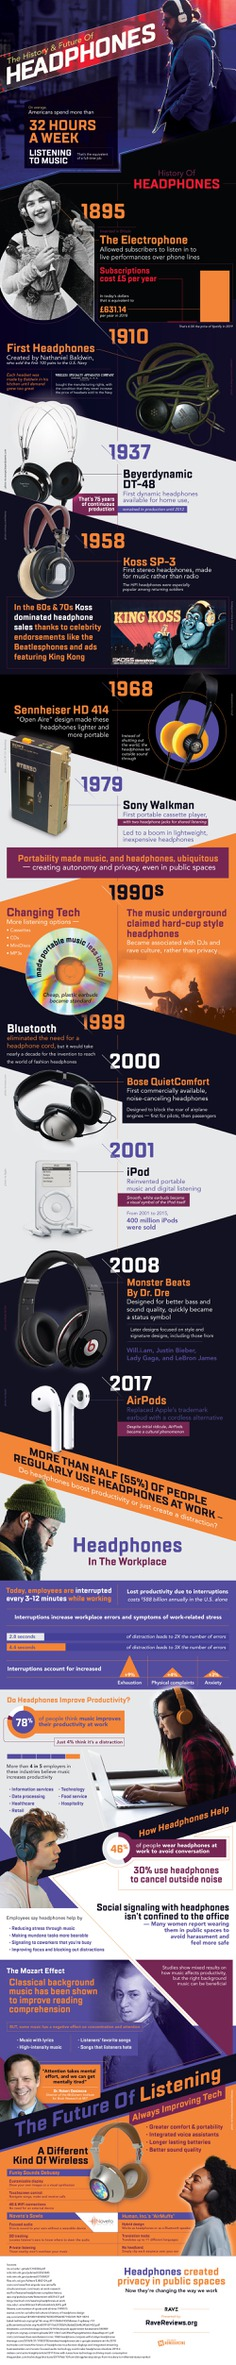 Headphones, from the beginning to now. How have they changed?